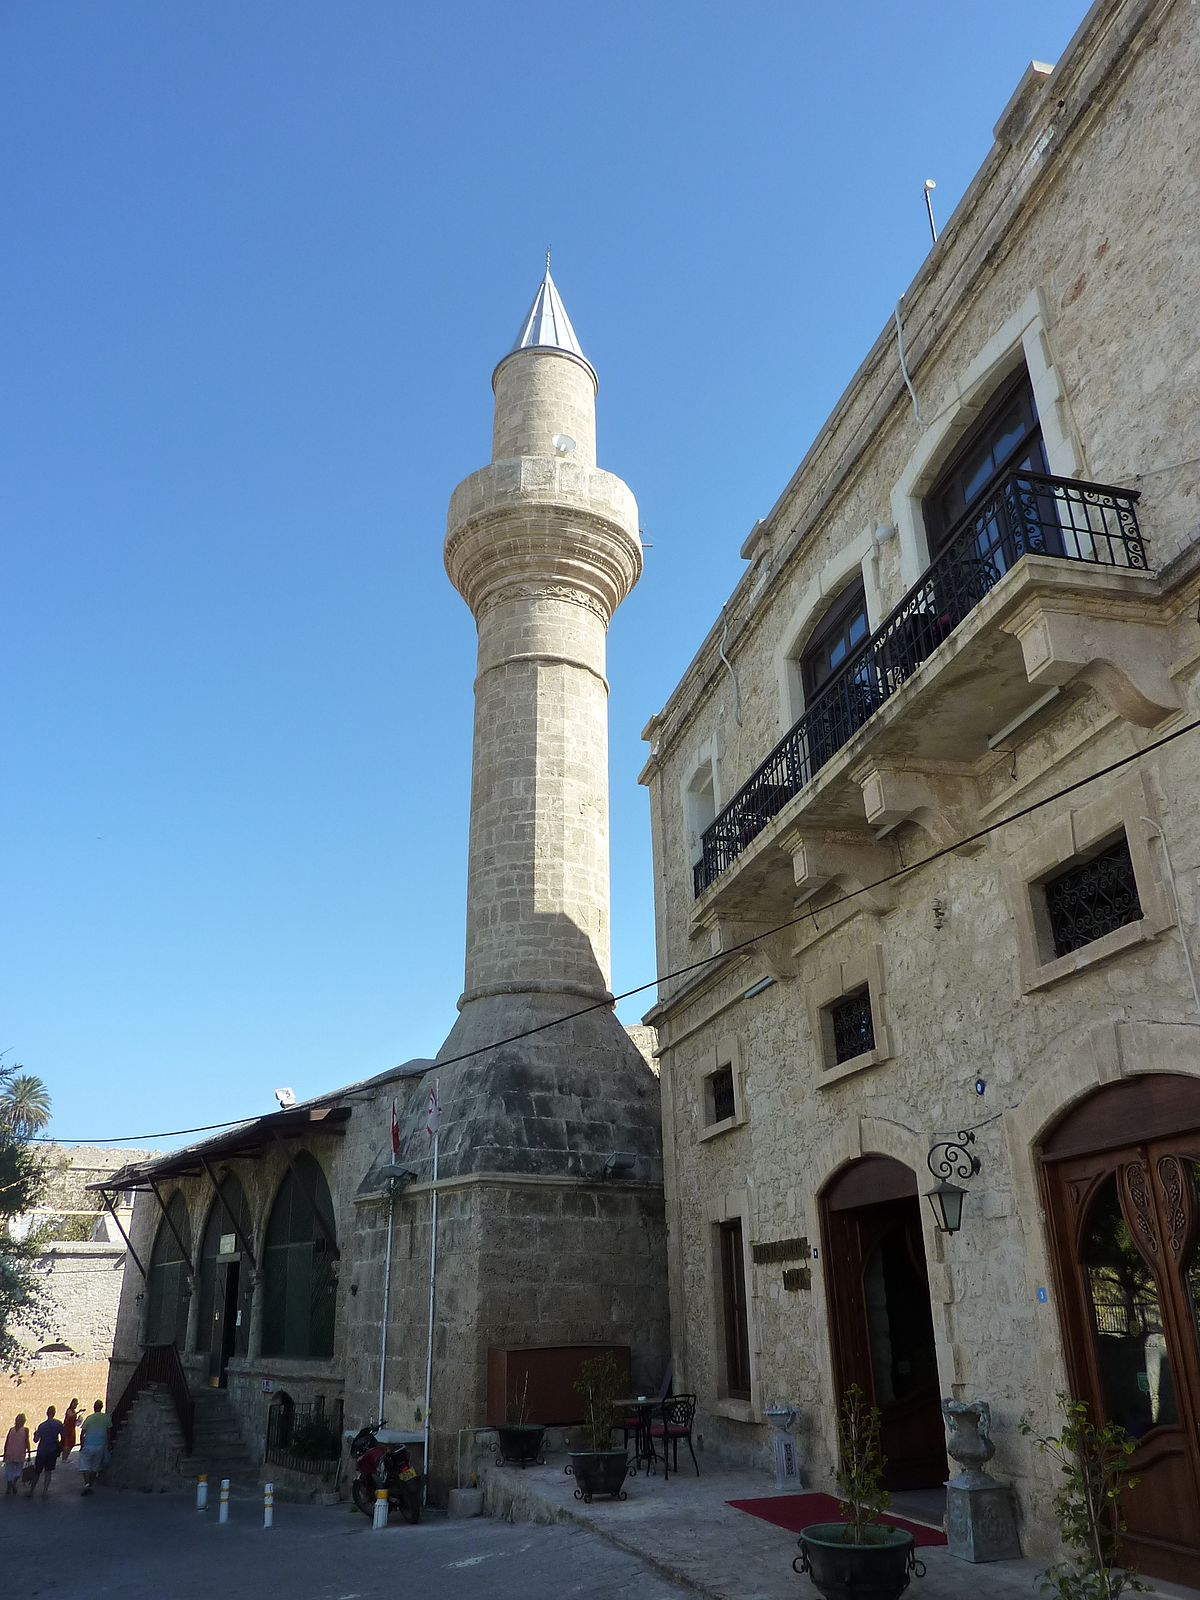 kyrenia muslim The tomb of omar – four kilometers to the east of kyrenia, on the coastal road to catalkoy, is the tomb od hazreti omar the small hazreti omar mosque and tombs house the remains of a 7th century commander and six other muslim holy men.